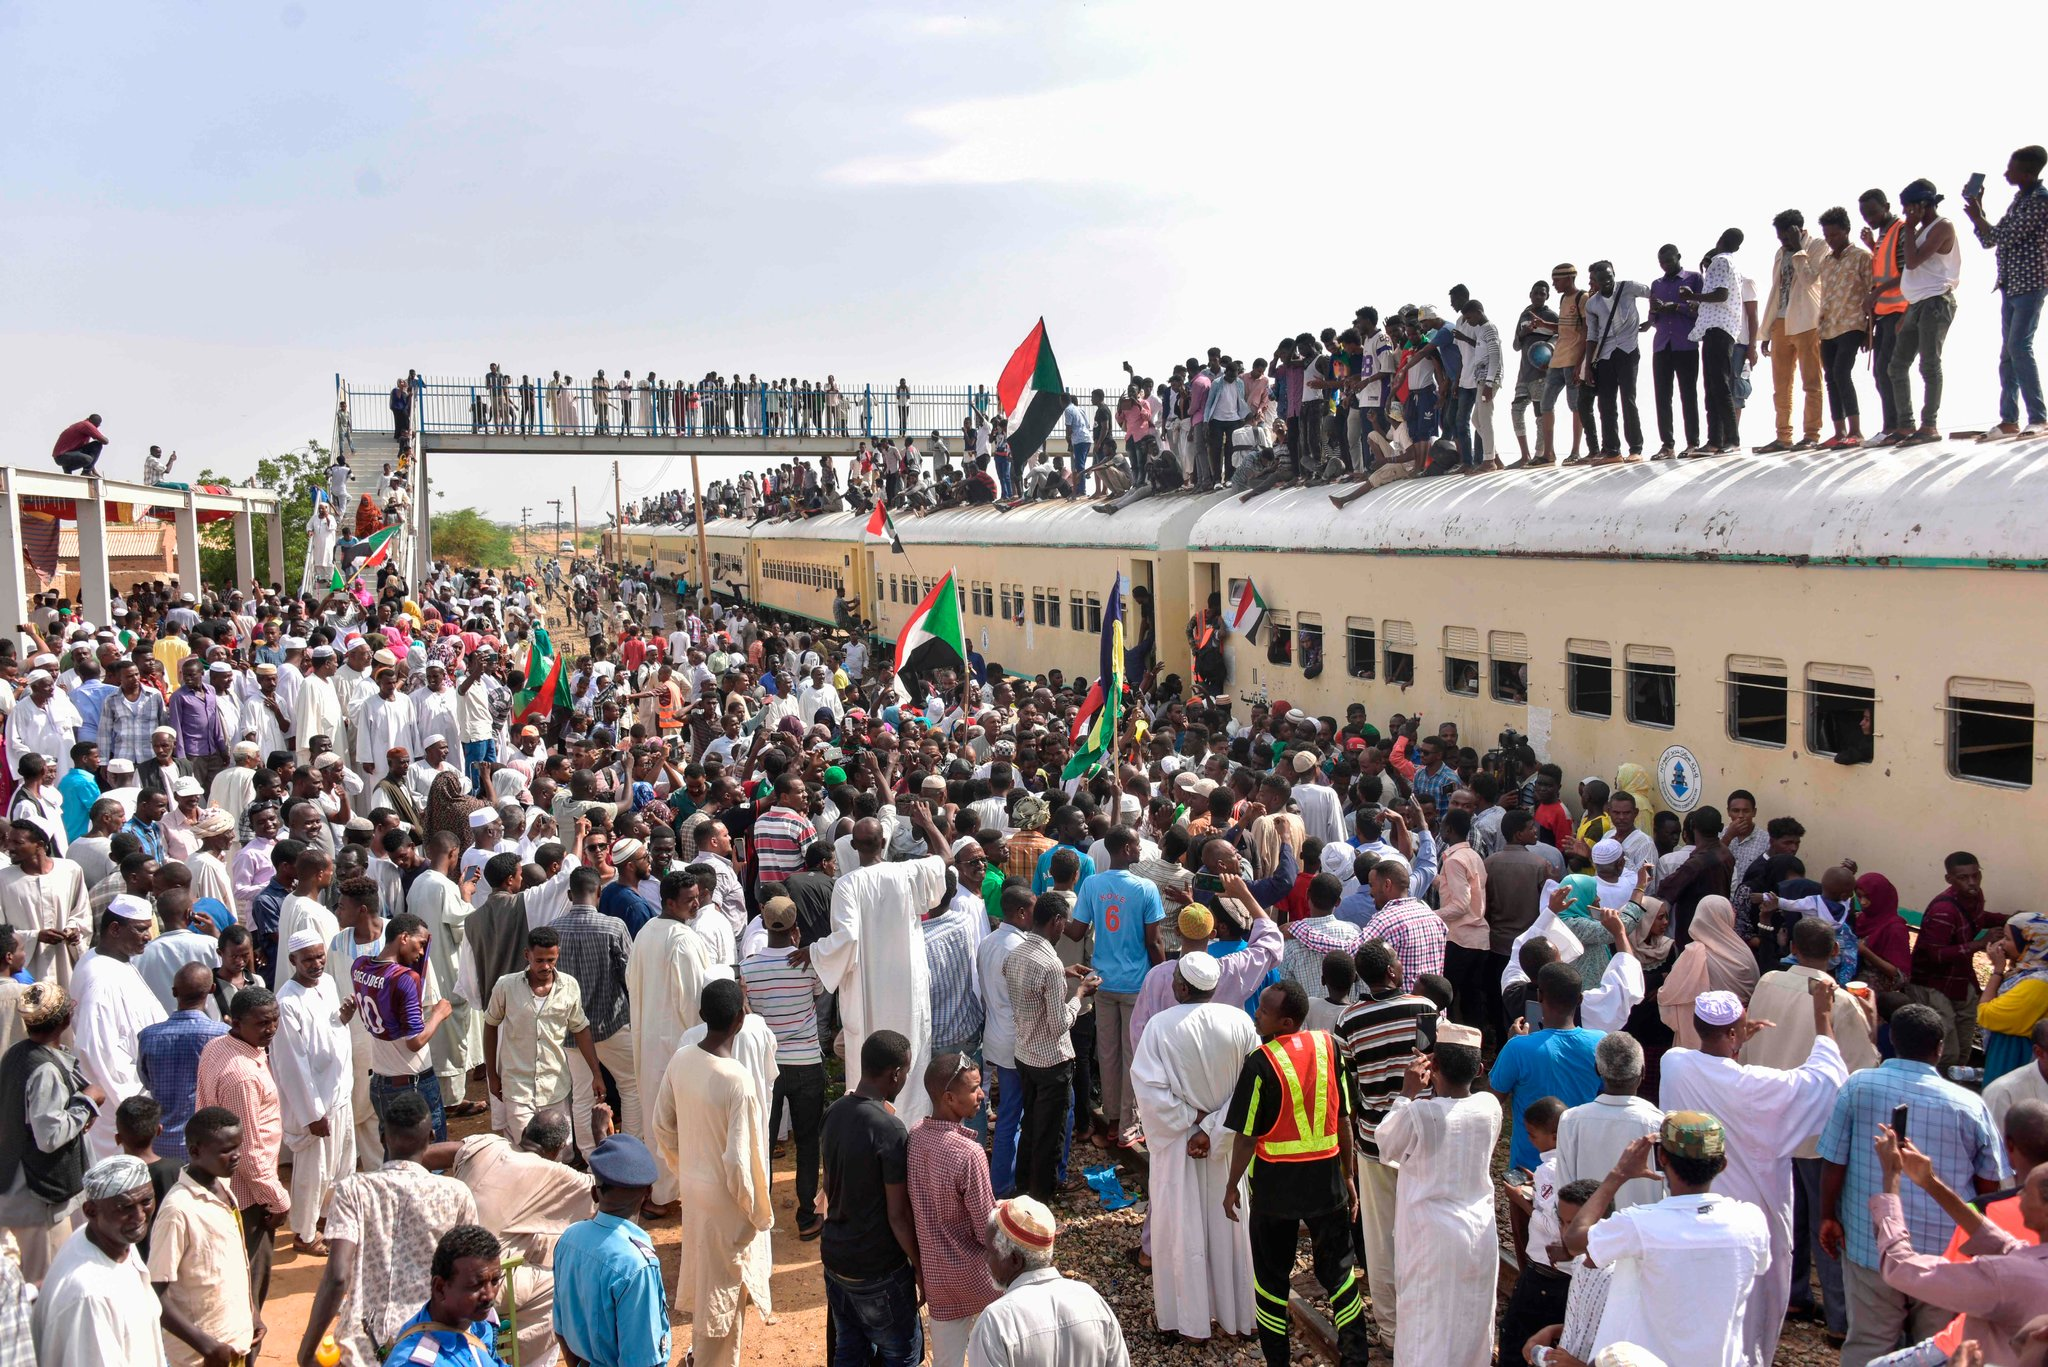 Has the unrest in Sudan finally come to an end? 5 Geopolitical Effects You Need to Know